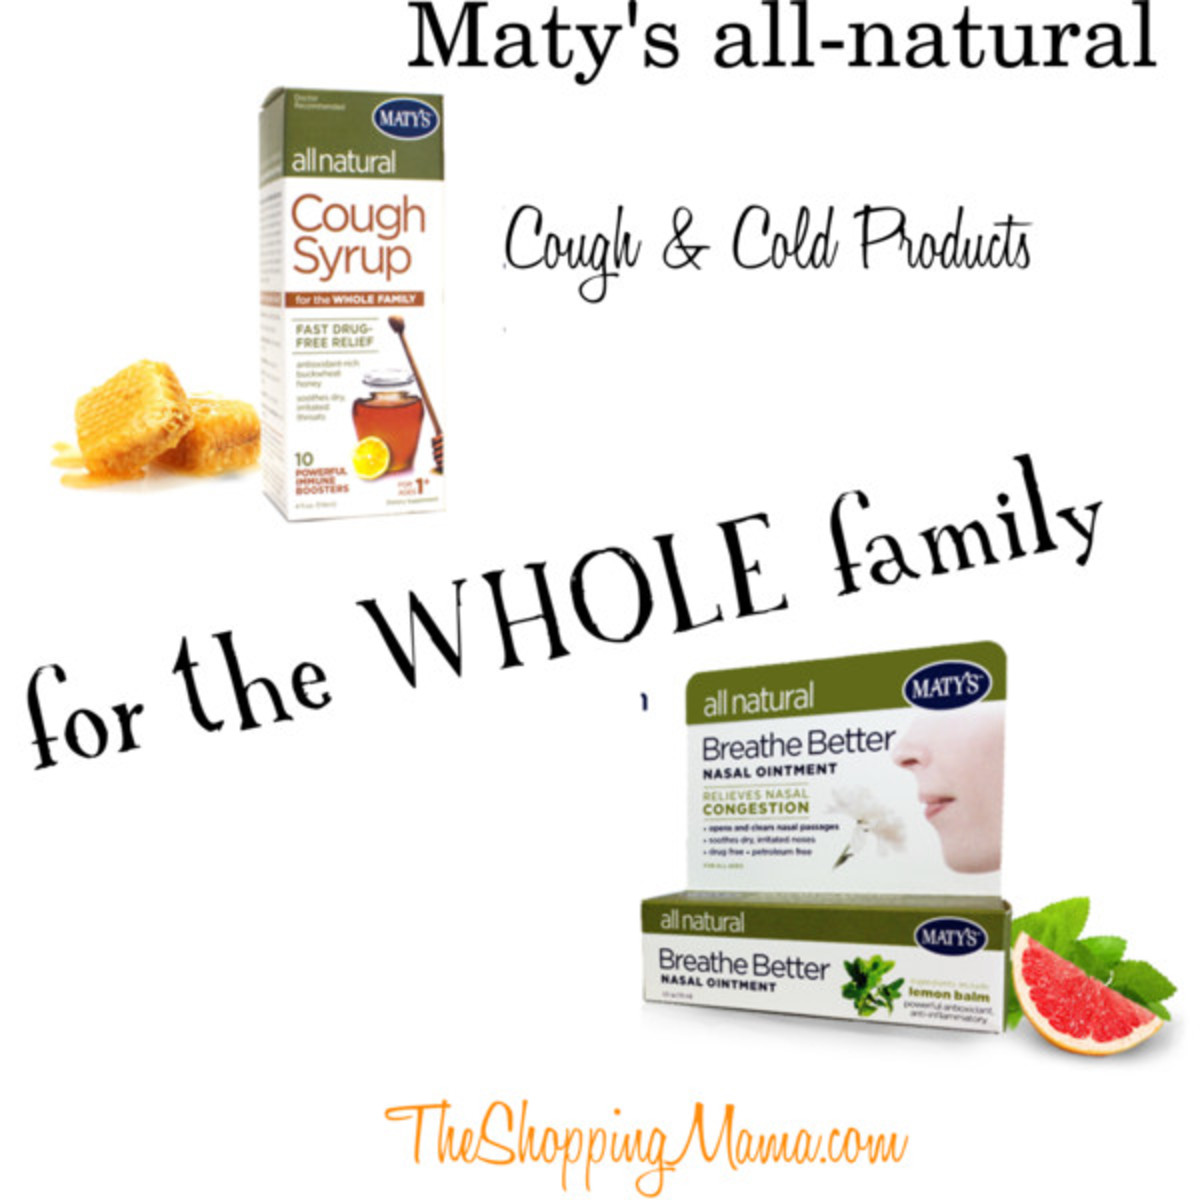 maty's cough and cold products